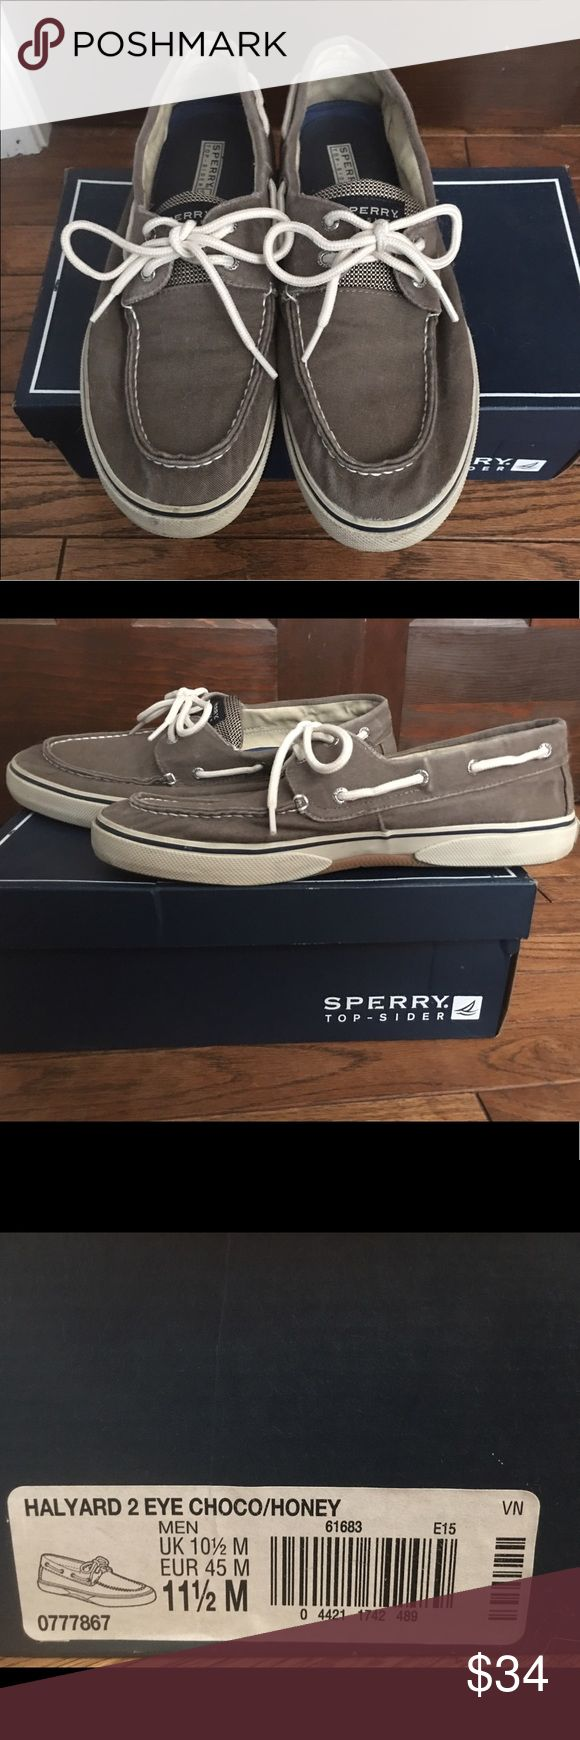 Men's Sperry Topsider Grey/blue men's Sperry's 👞👞                                            Hardly worn! No stains, tears, weird smells, etc.                            Smoke-free household 🚭  Freaky fast shipping!! 💌       Make me an offer 💸 I 💜OFFERS! Sperry Top-Sider Shoes Loafers & Slip-Ons